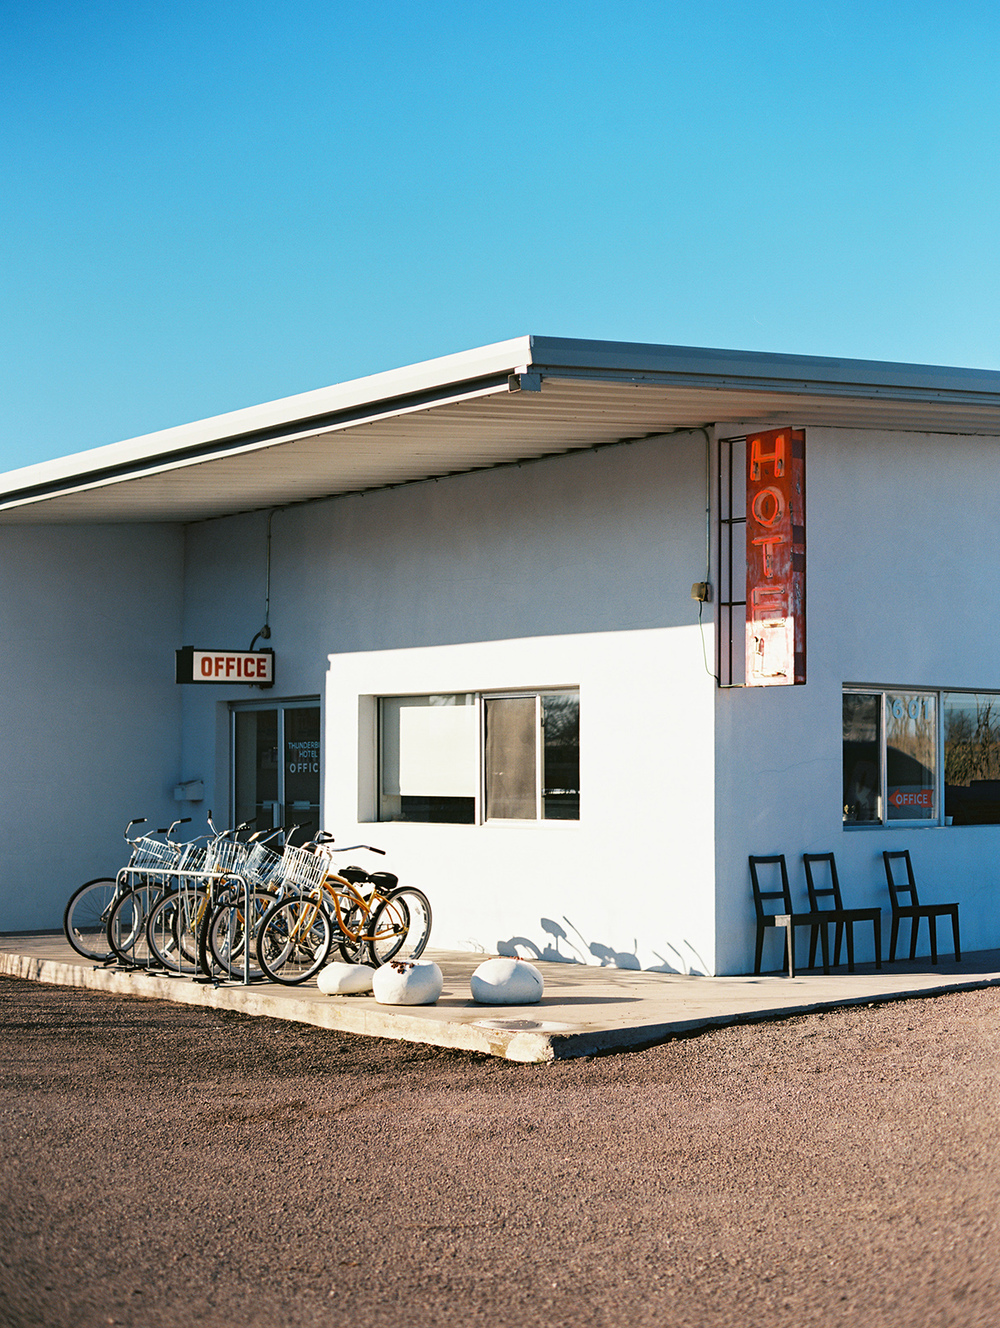 marfa_texas_film_travel_photography_14.jpg